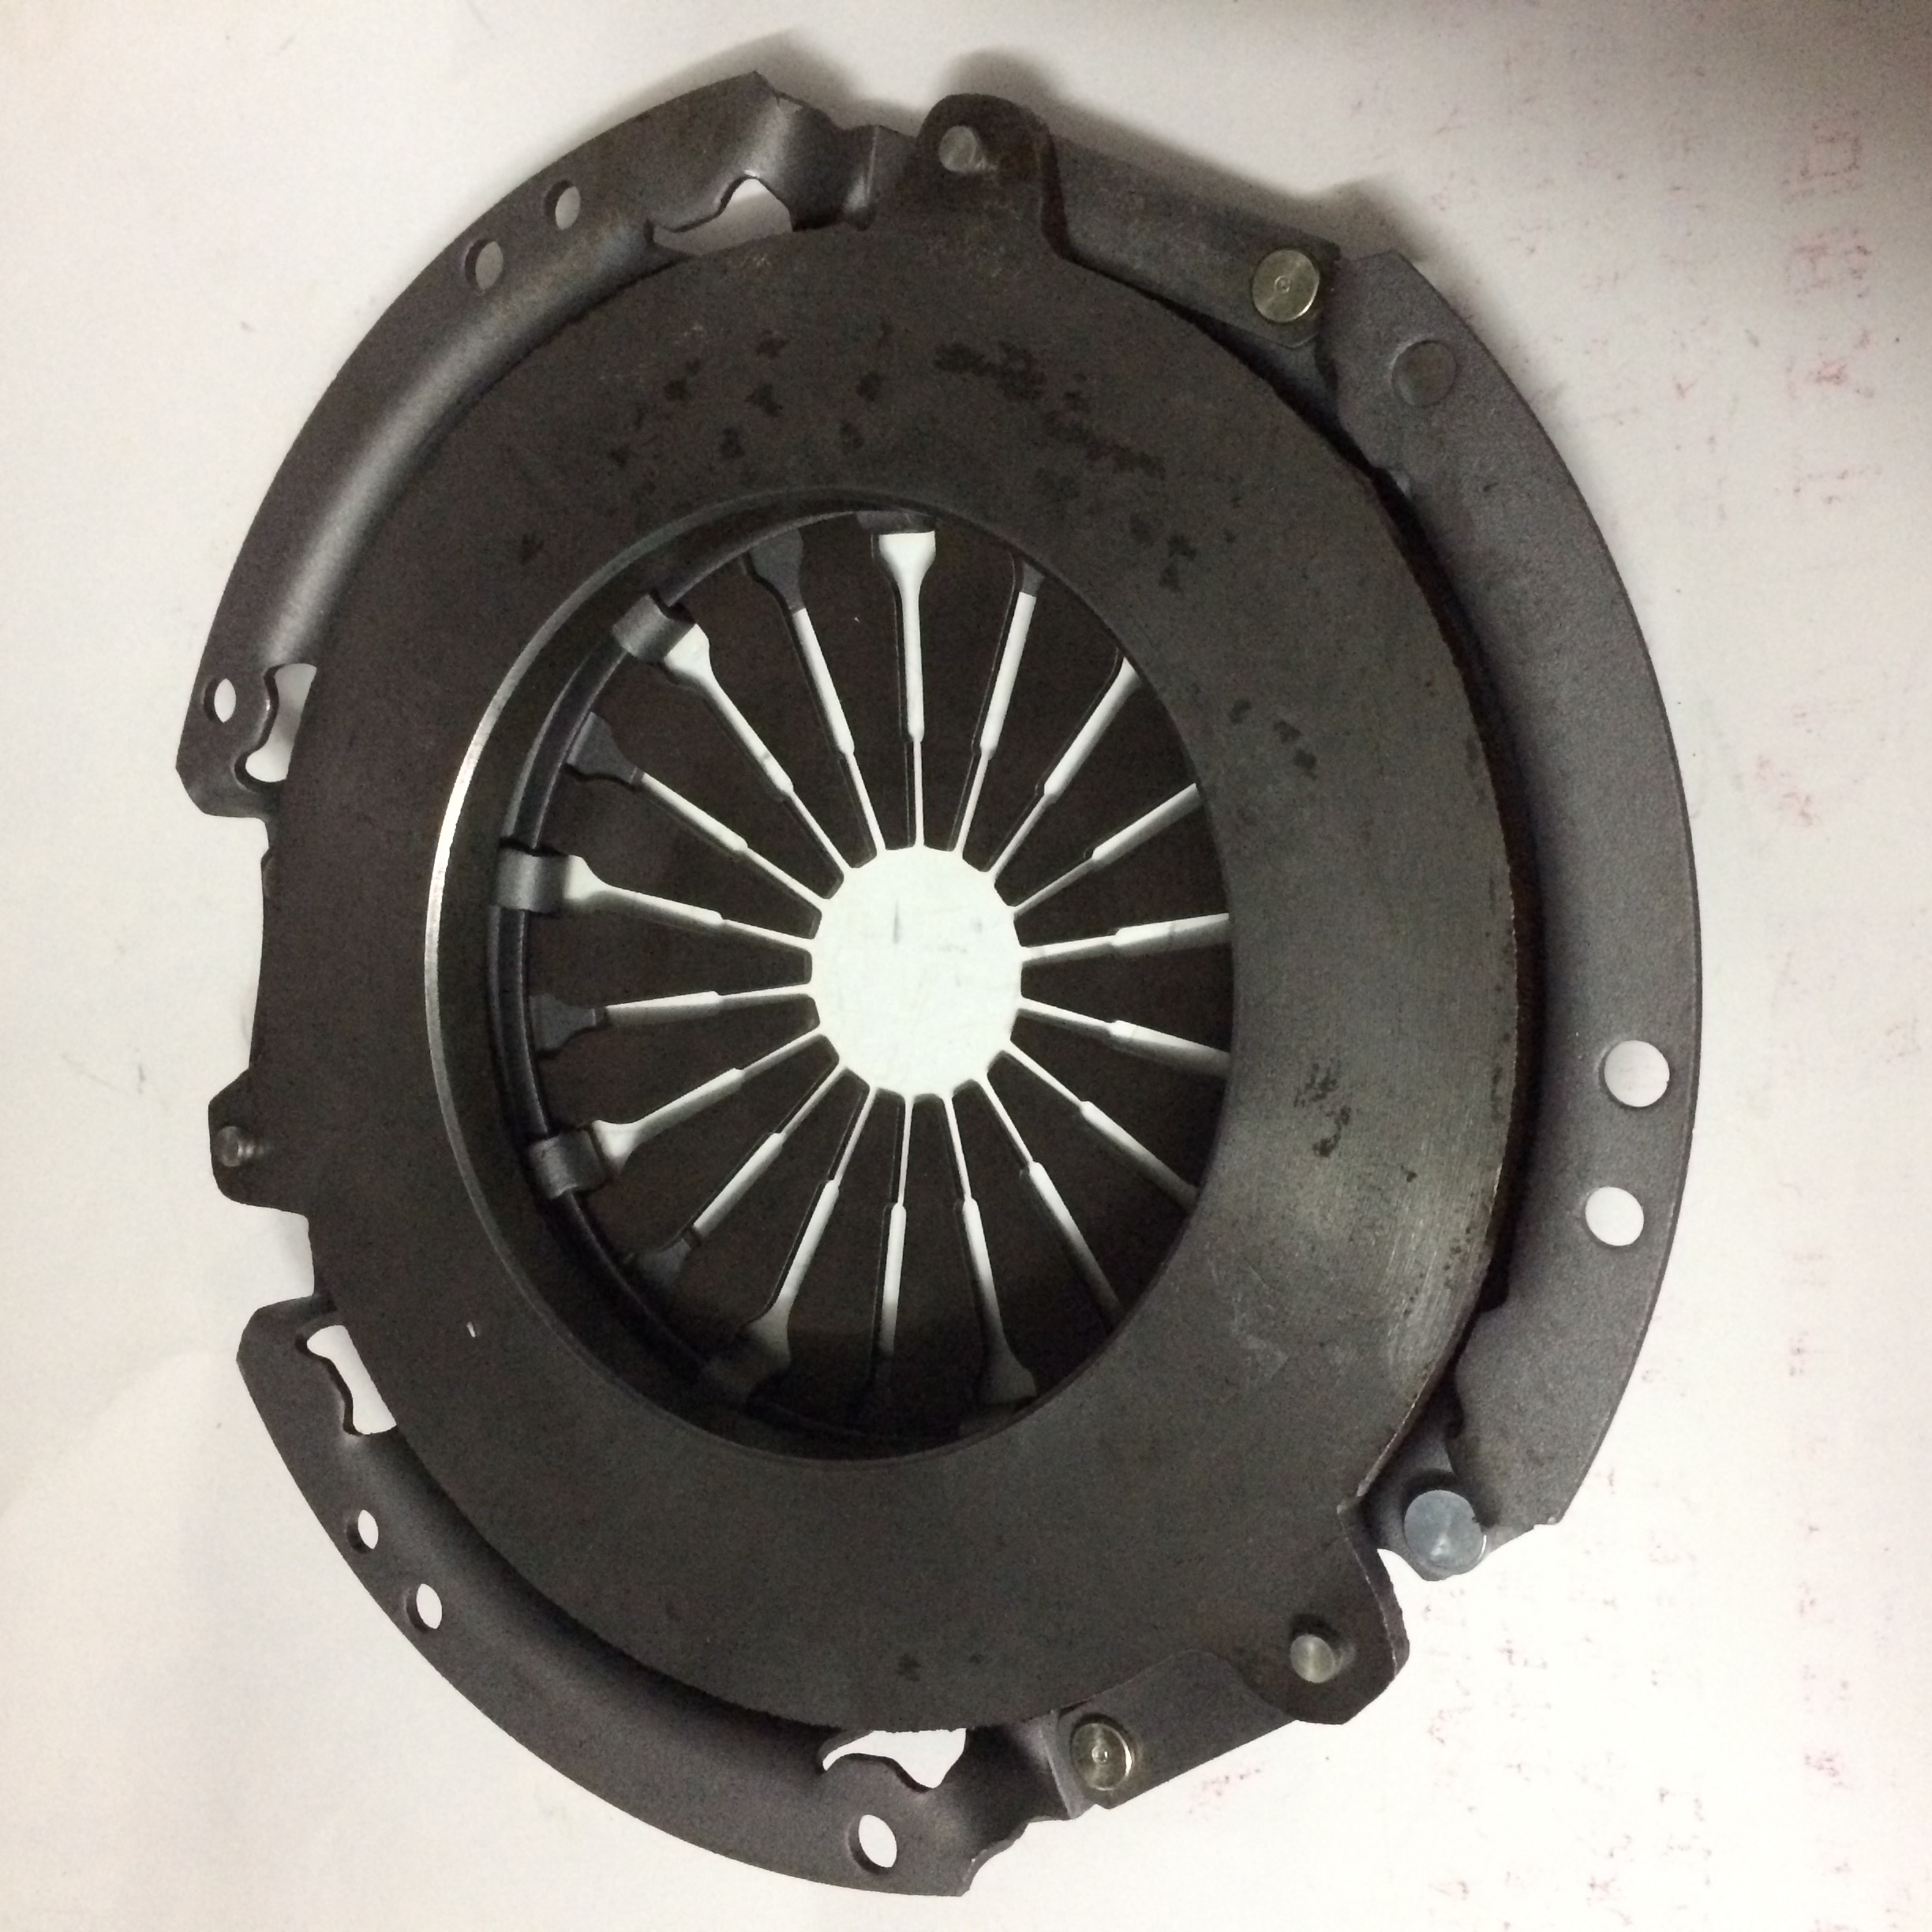 F3402-1600750A Heavy duty truck diesel engine parts clutch cover